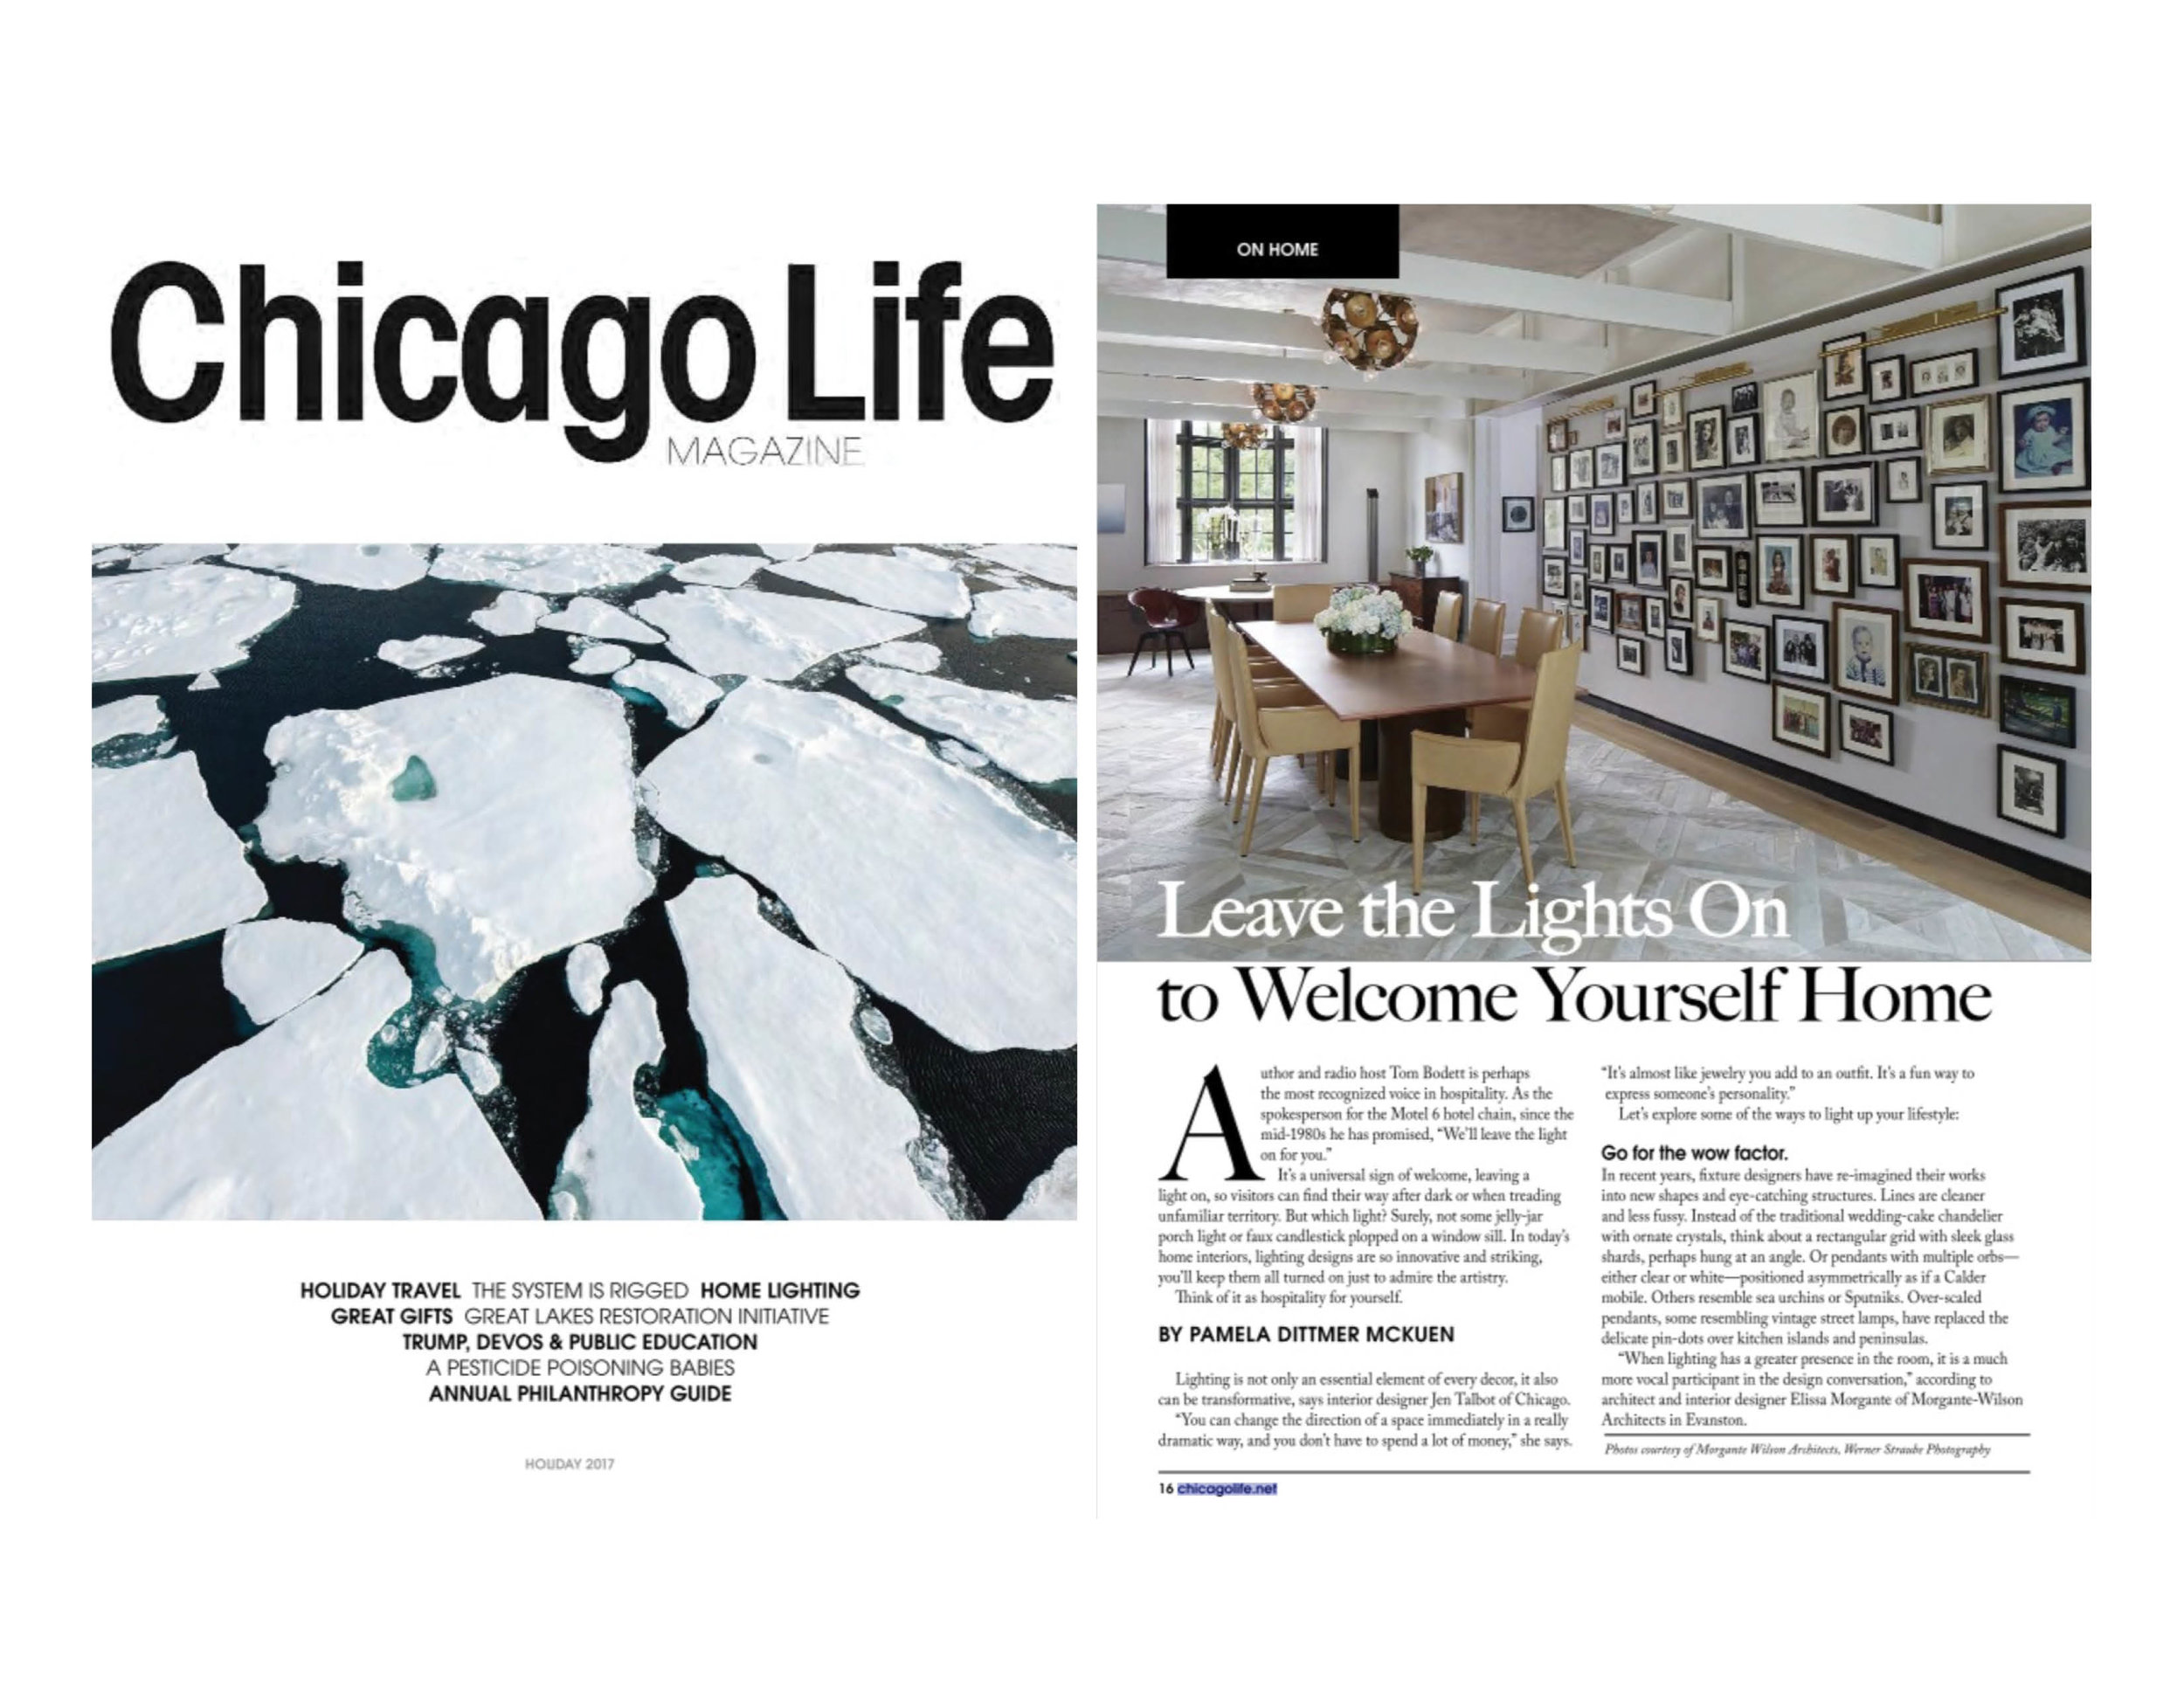 Chicago+Life+Article+Image.jpg